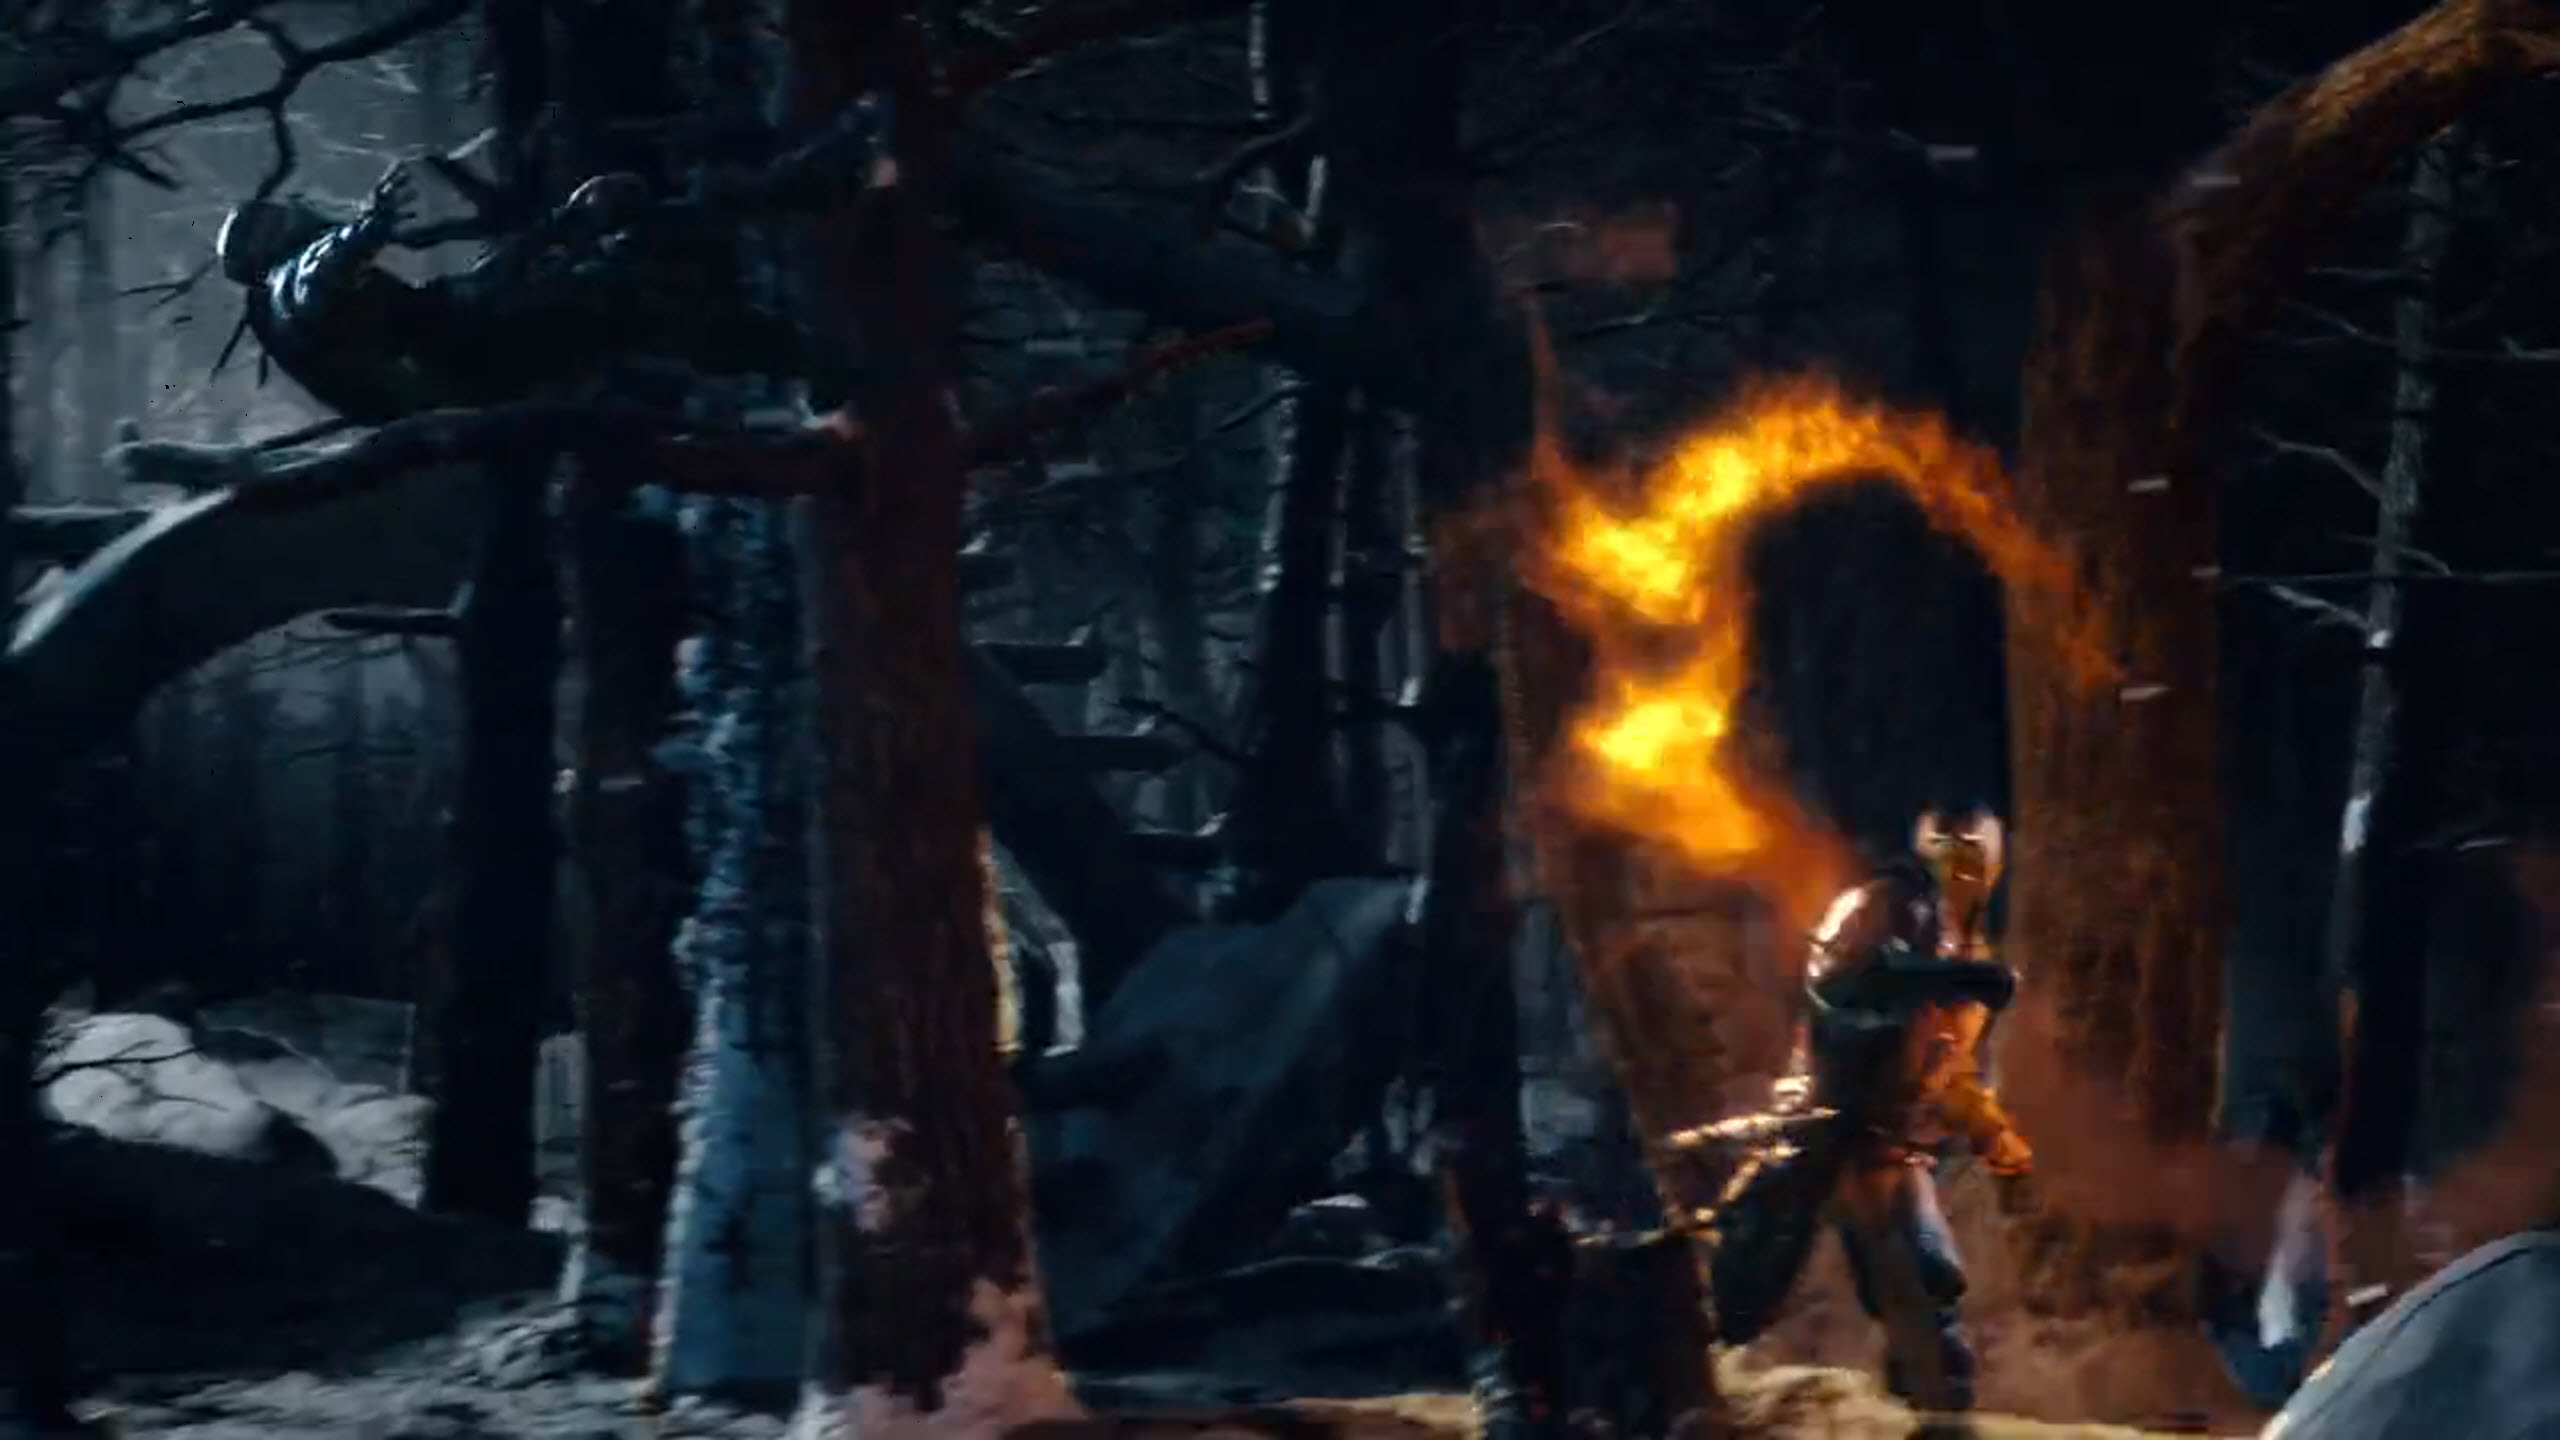 Mortal Kombat X Fatality Lives On - Features Multiplatform Support, Releasing around 2015